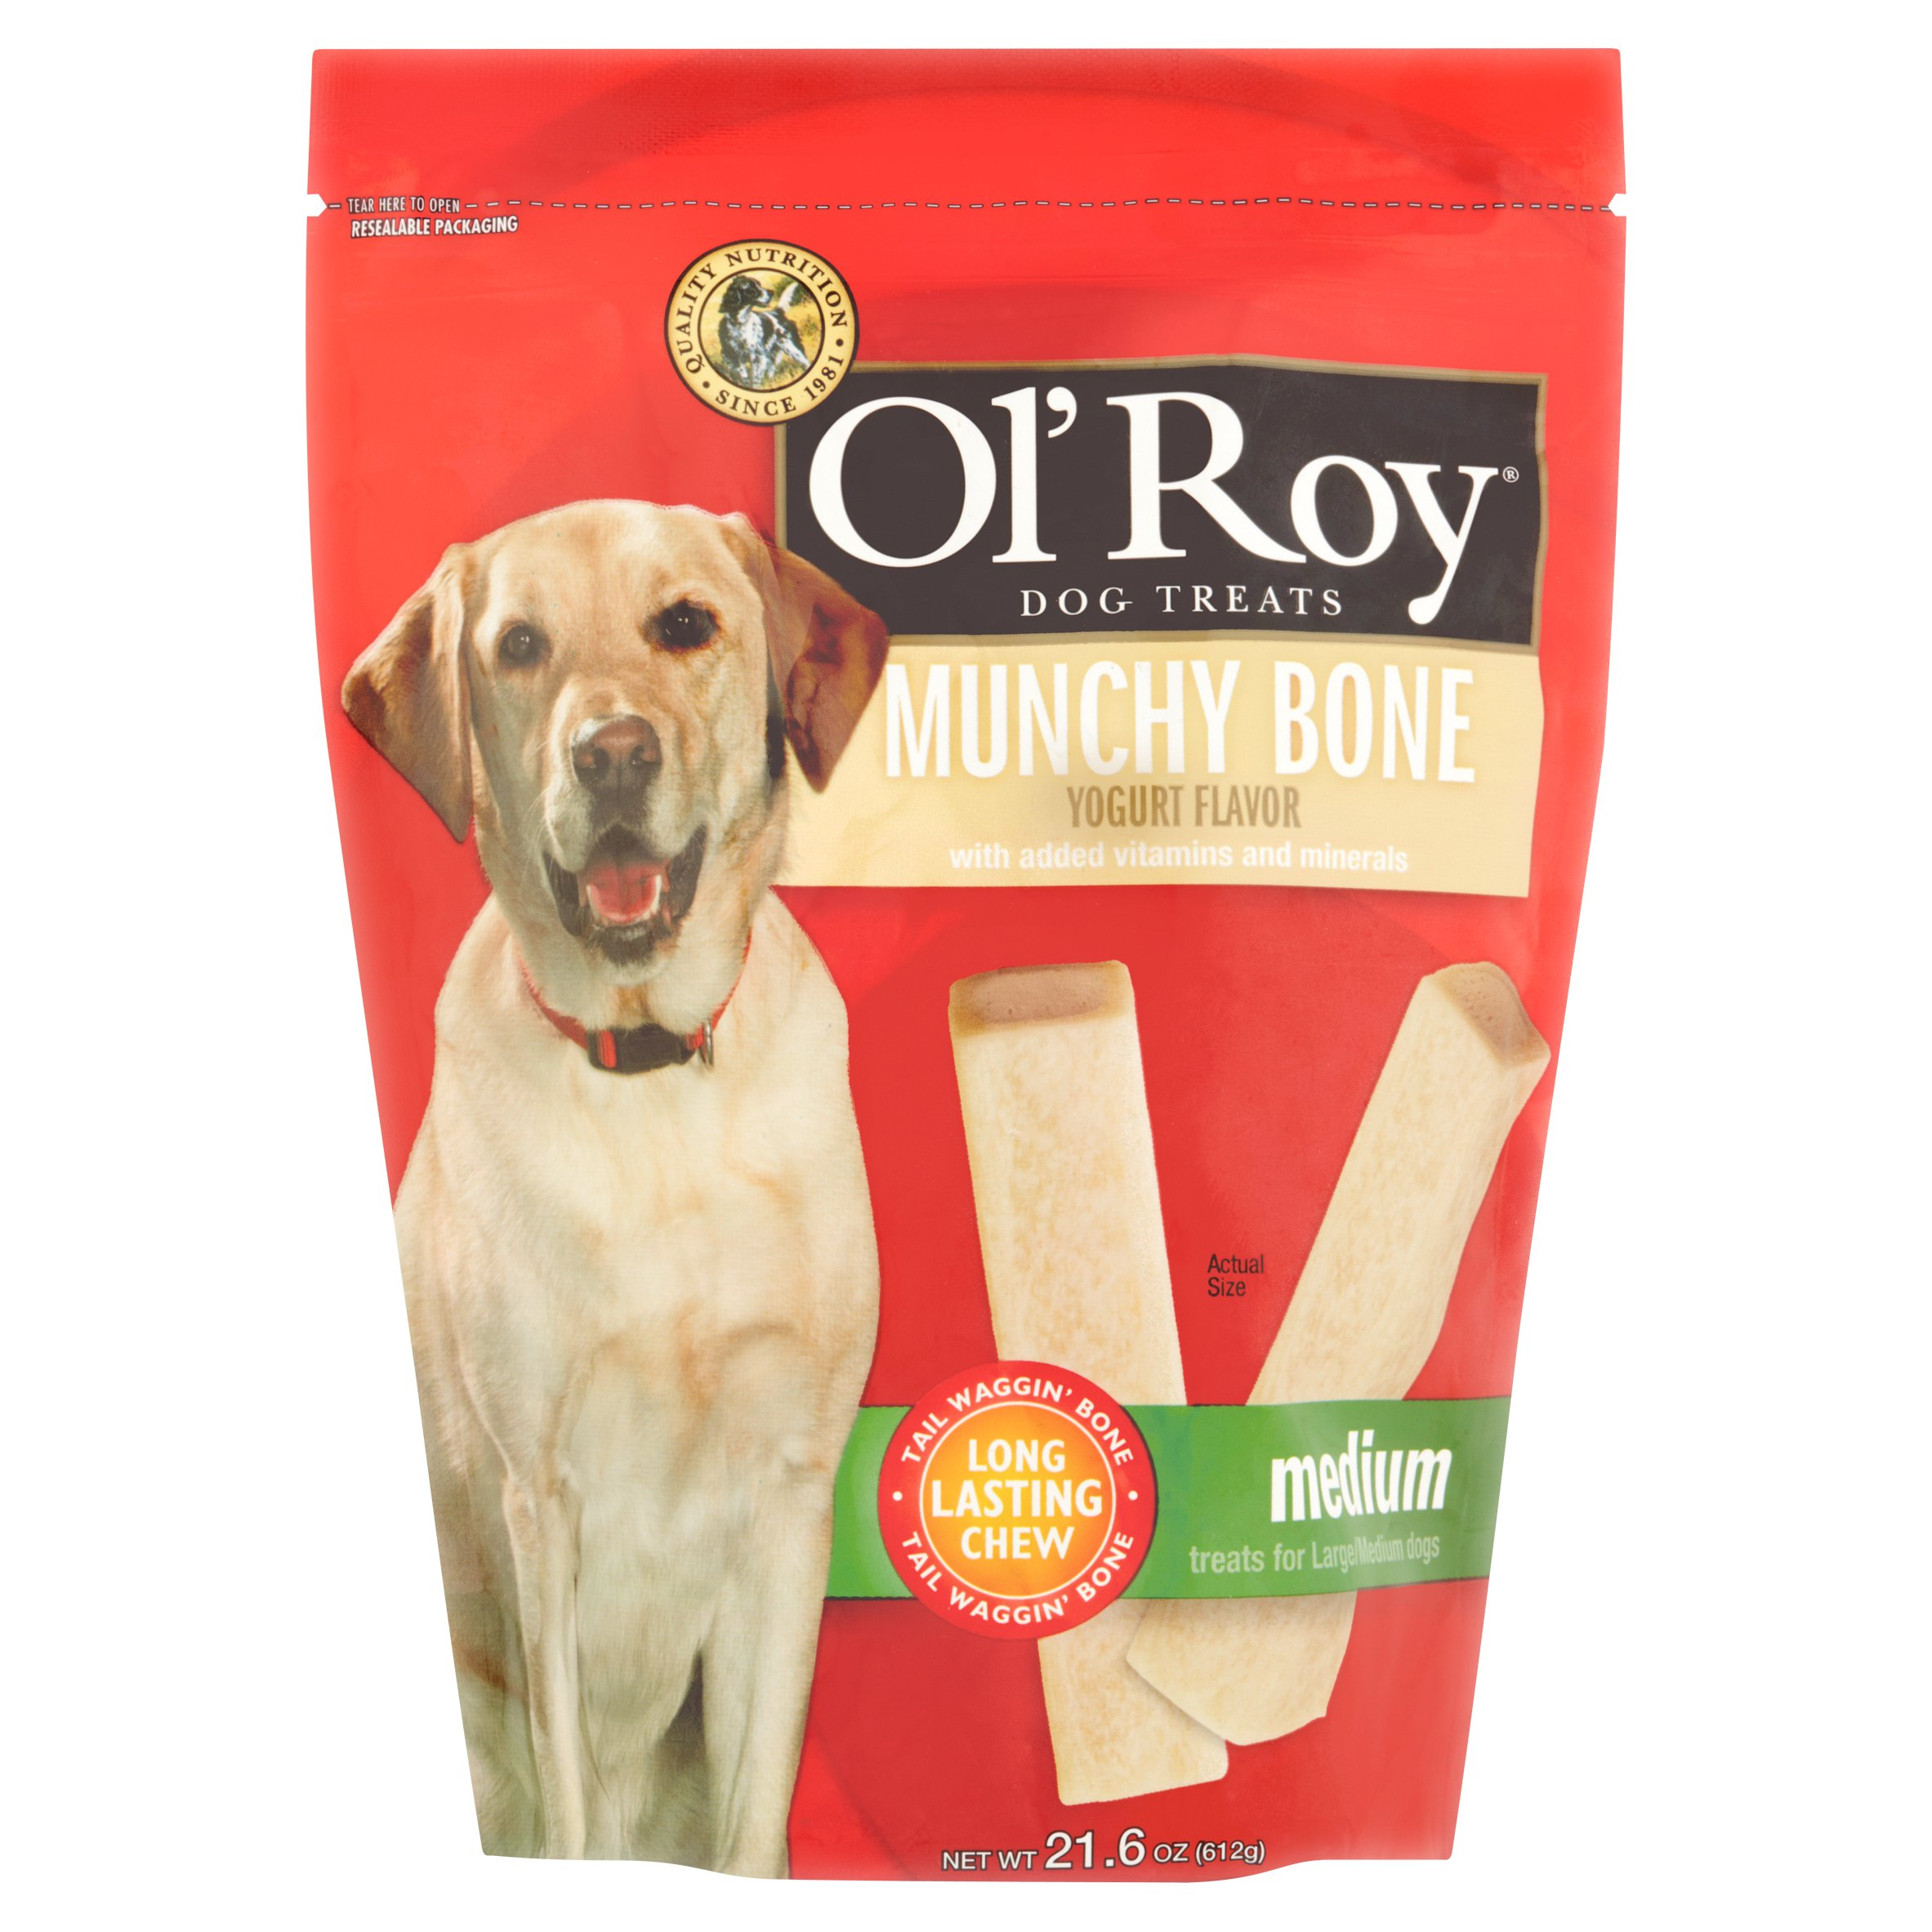 Ol' Roy Munchy Bone Yogurt Flavor Medium Breed Dog Treats, 21.6 Oz